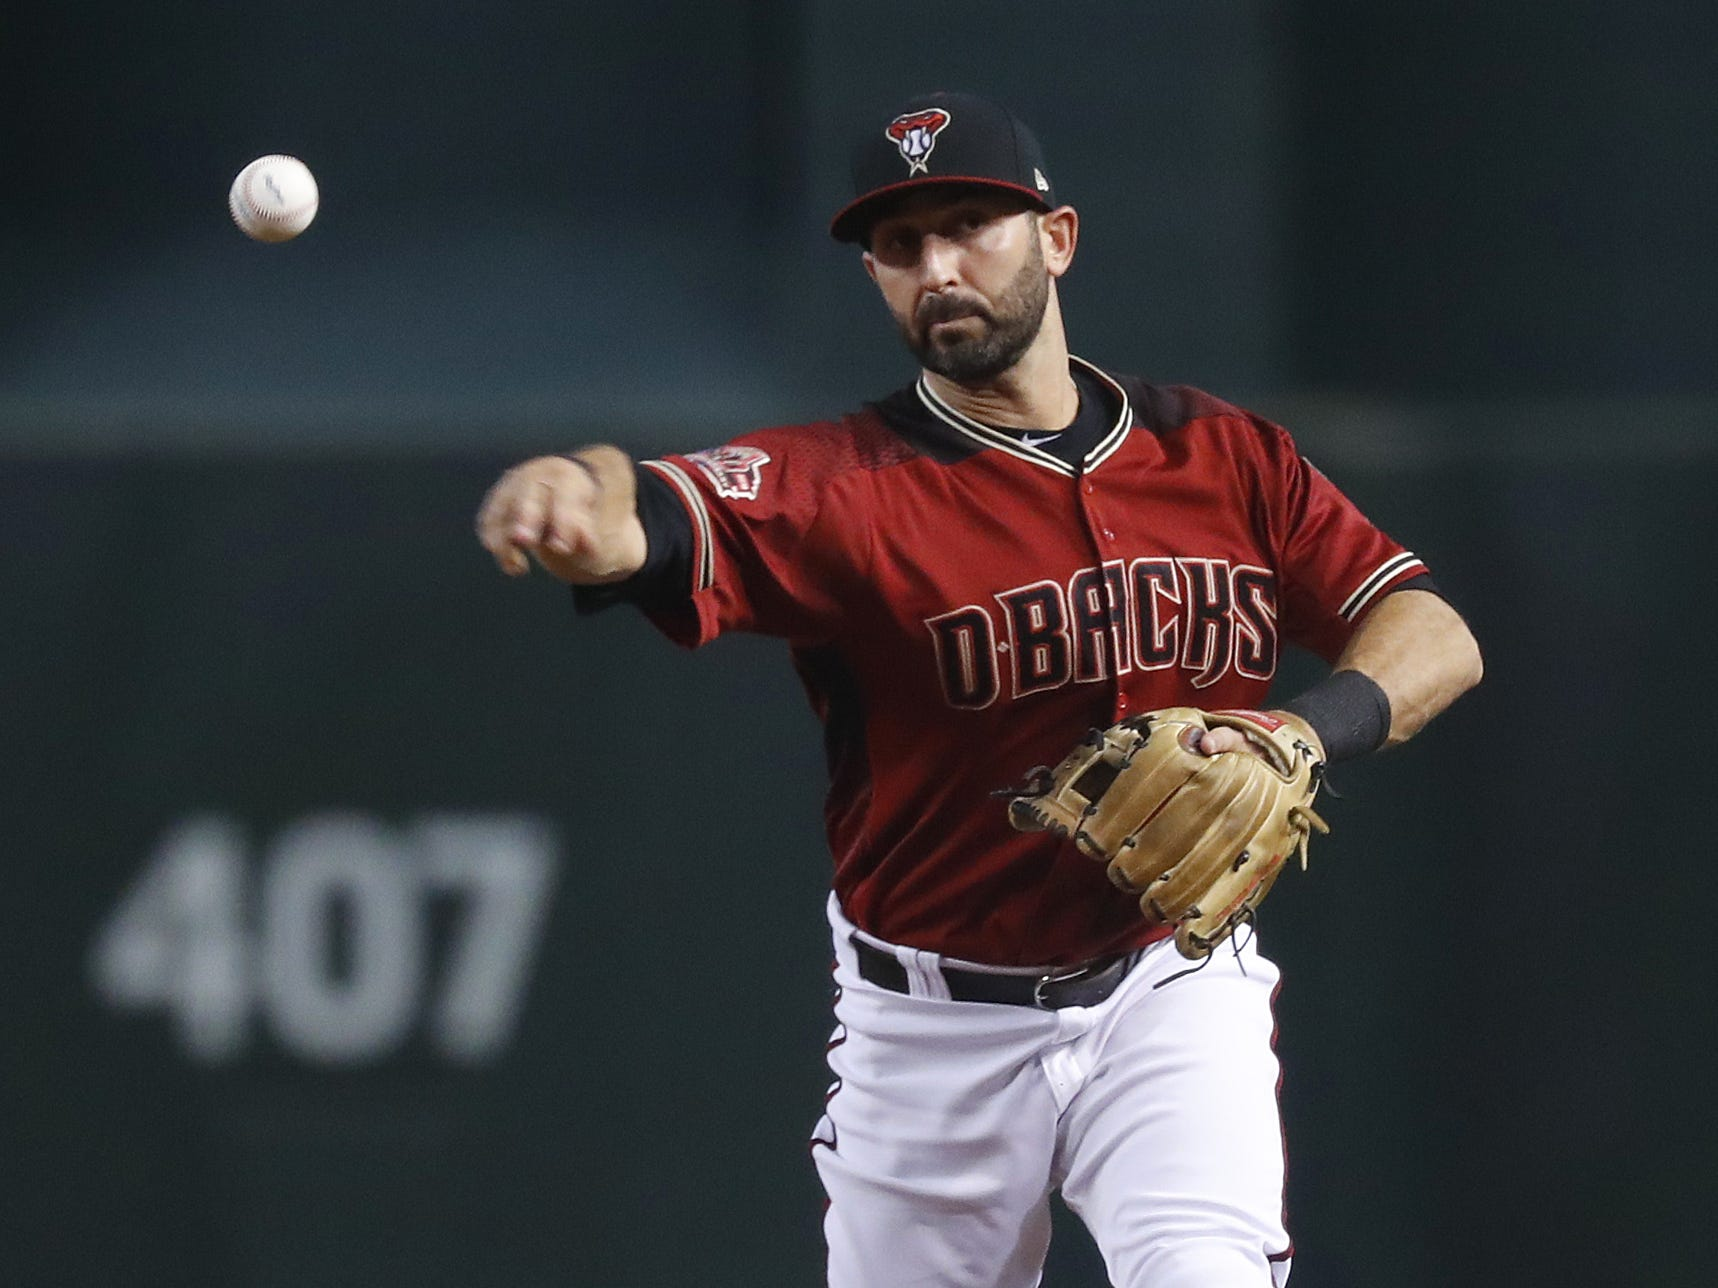 Diamondbacks Daniel Descalso throws out a Braves runner at first base during the third inning at Chase Field in Phoenix, Ariz. on Sept. 9, 2018.